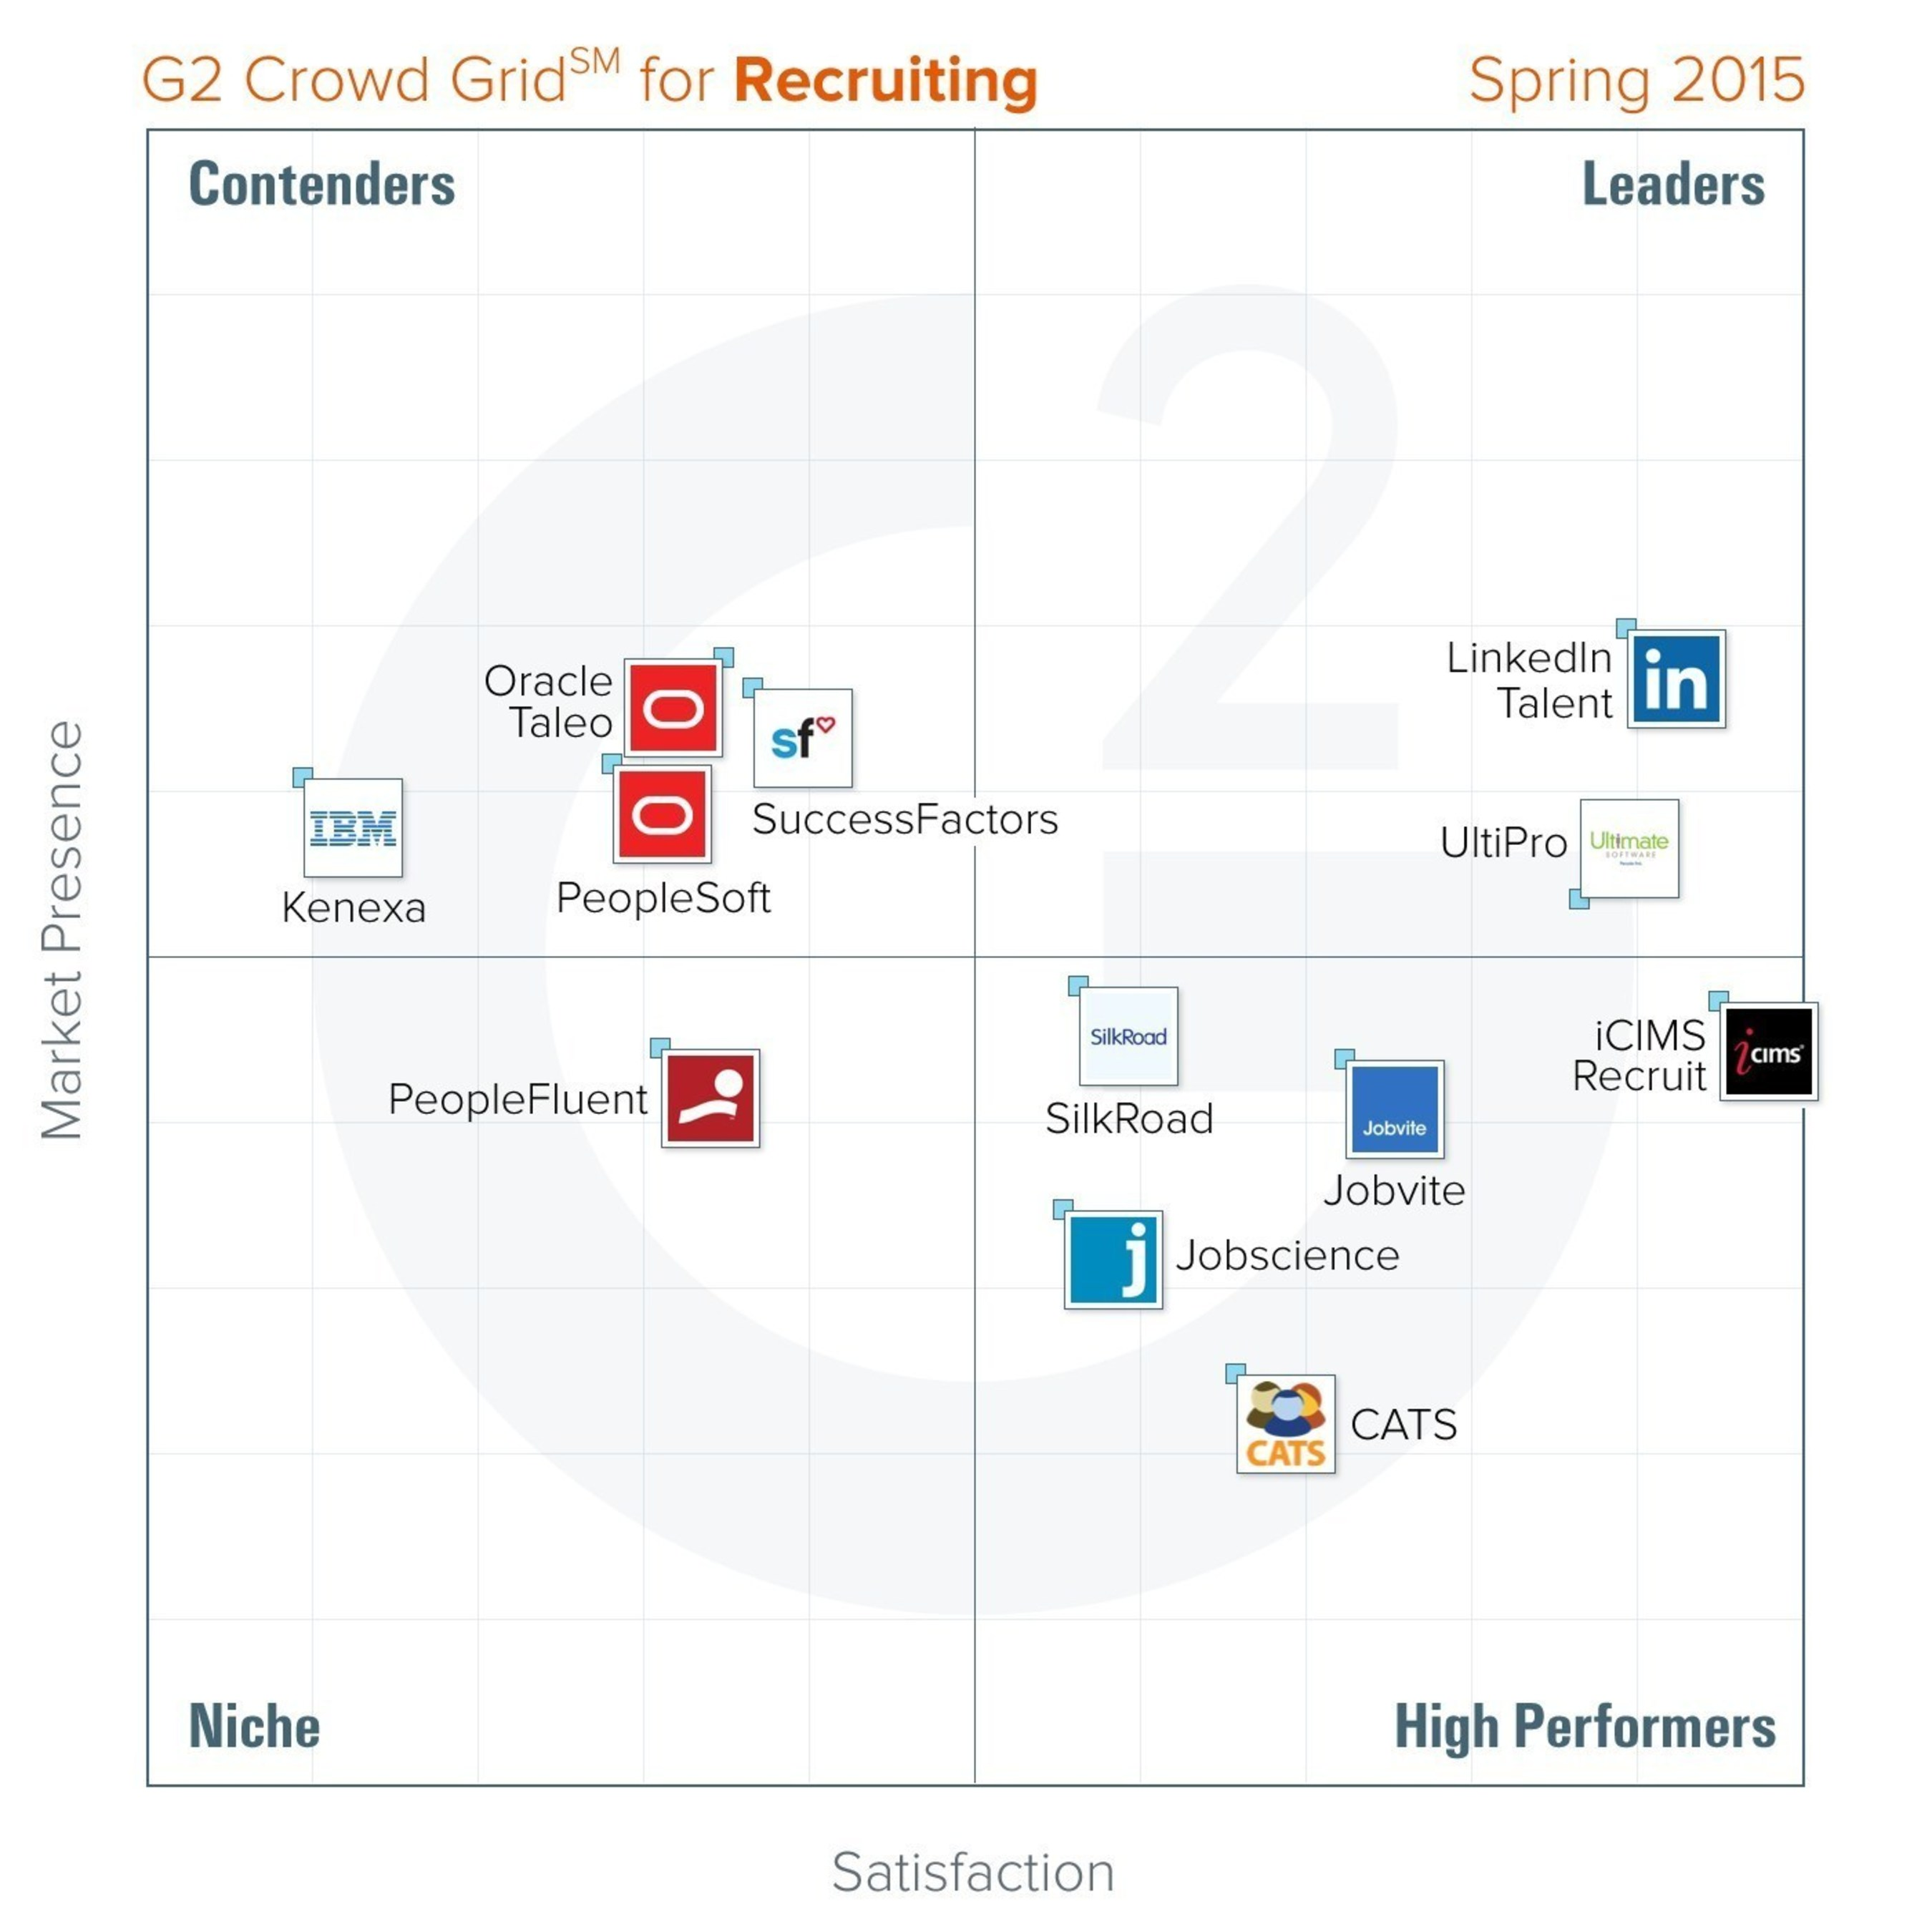 G2 Crowd publishes Spring 2015 rankings of the best recruiting software, based on user reviews